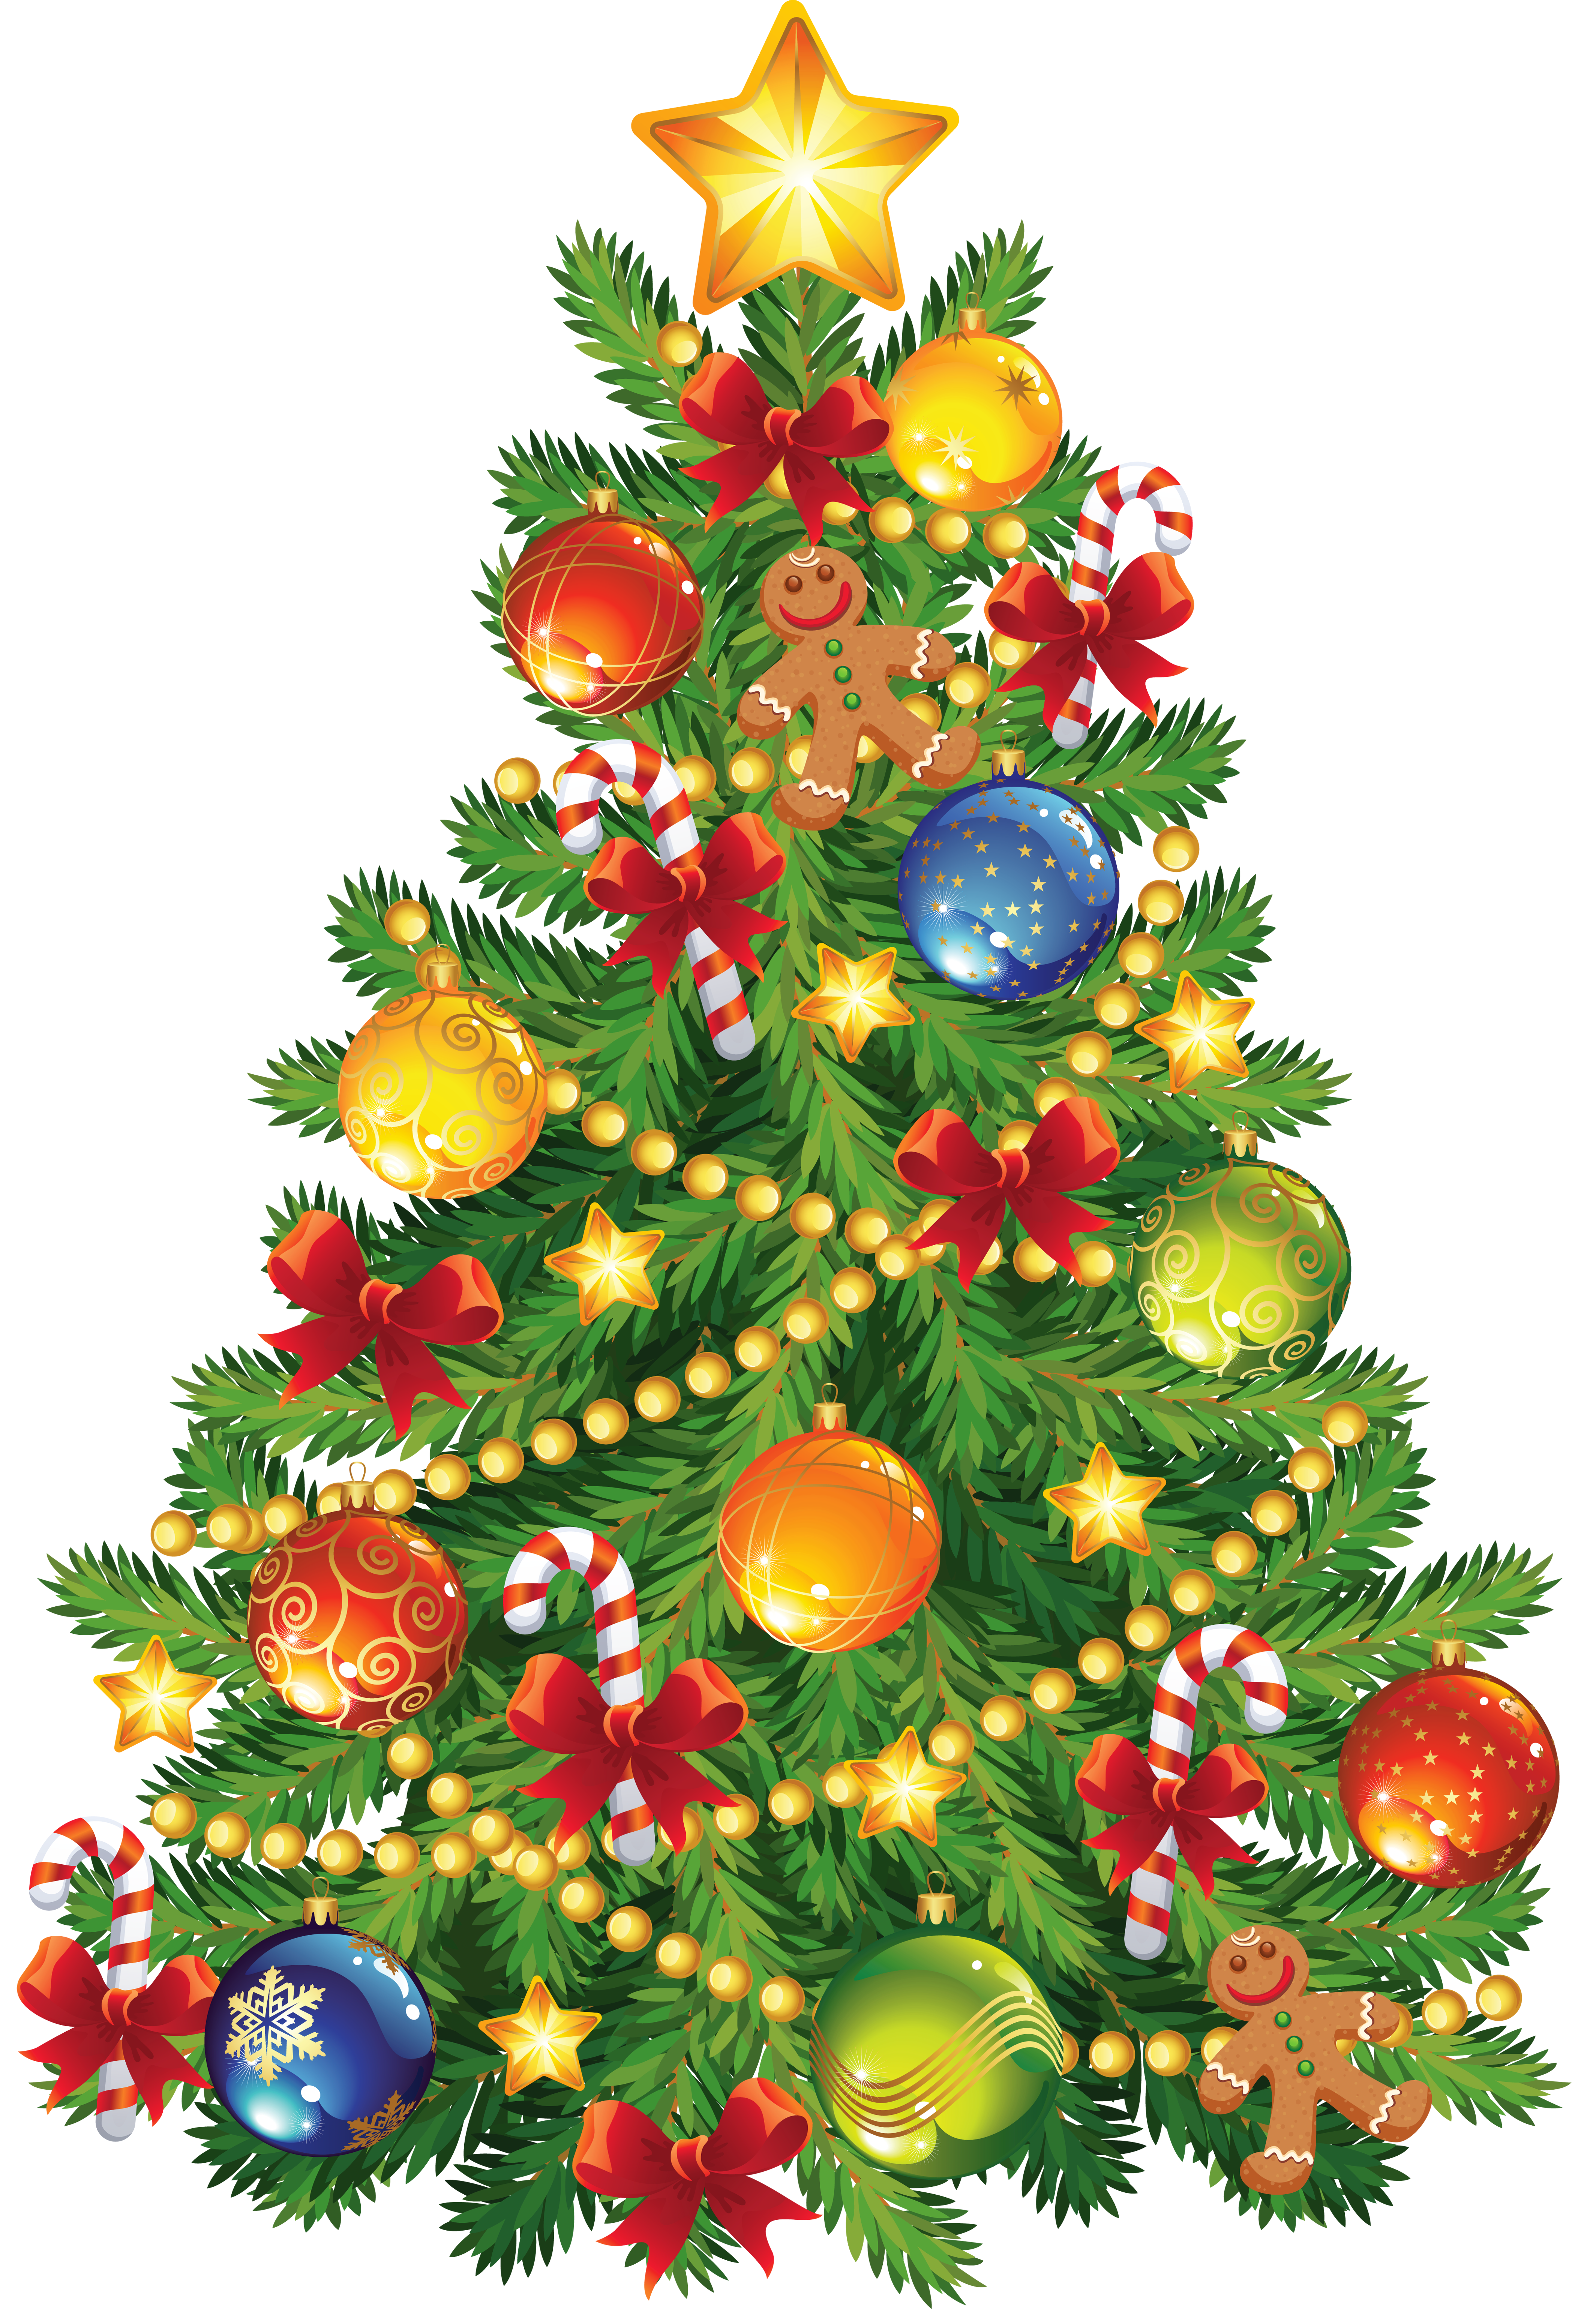 Christmas Tree clipart decorative Christmas ornament with Large tree